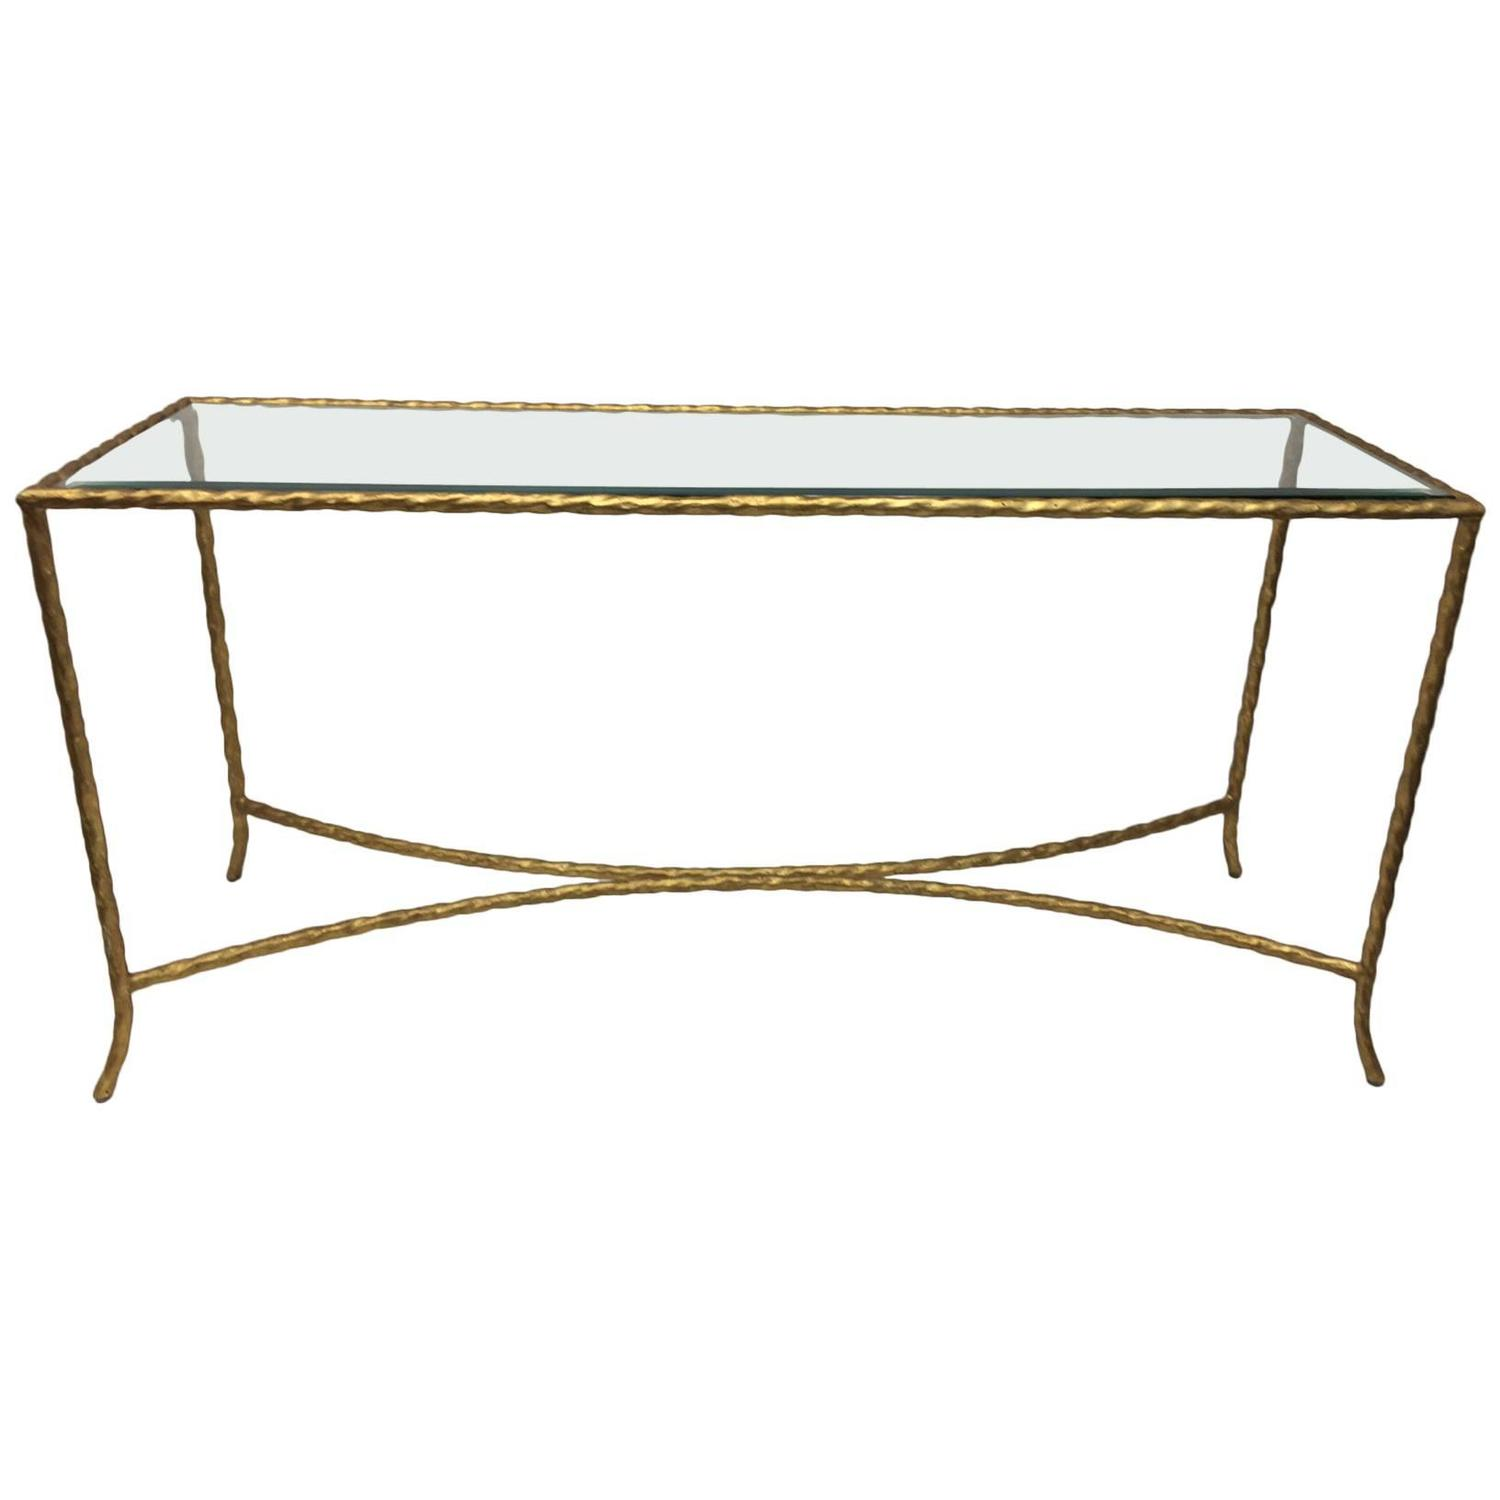 Currey and co gold rope metal console table at 1stdibs Metal console table